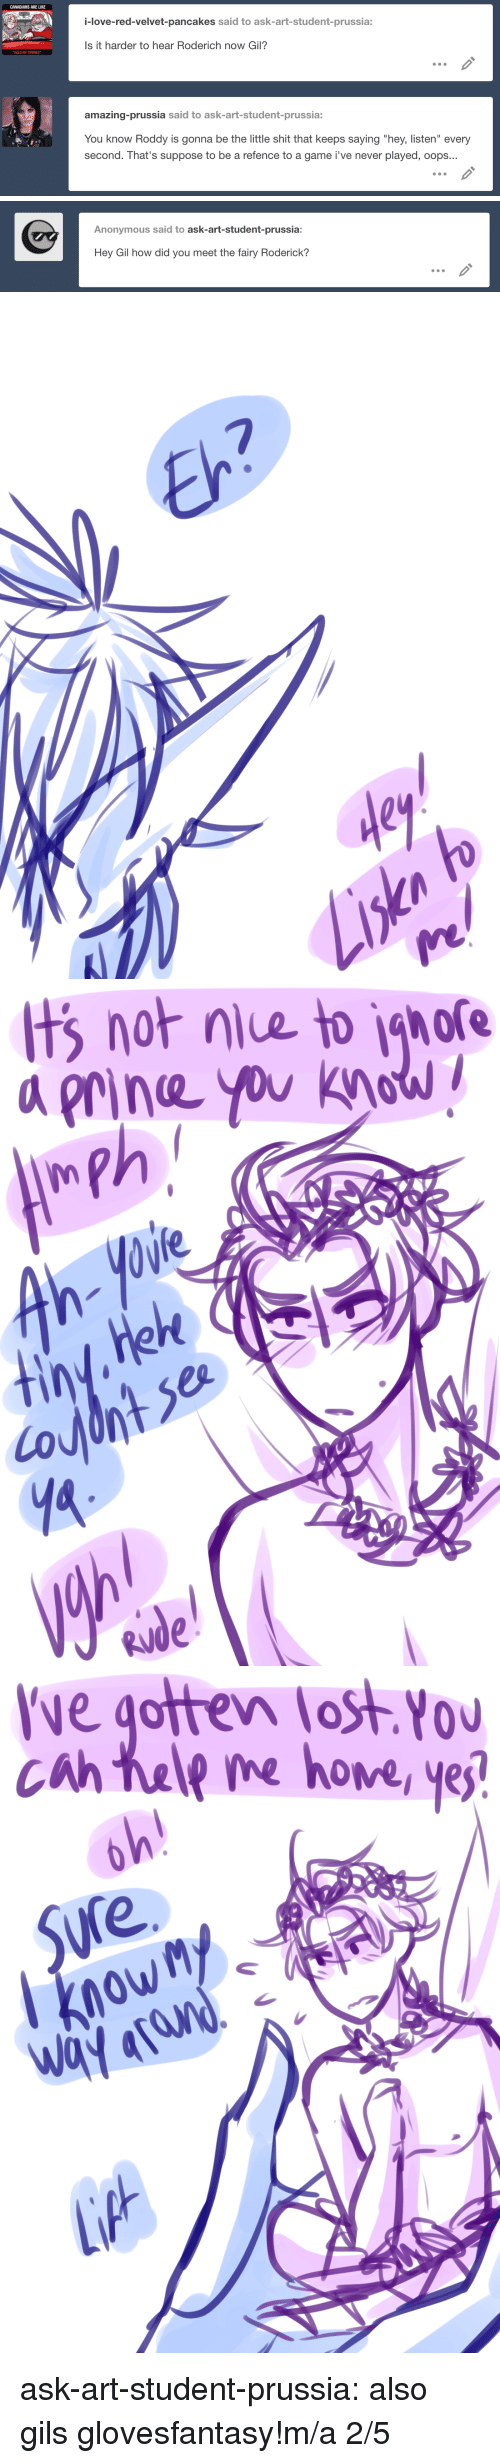 """Love, Target, and Tumblr: CANADIANS ARE LIKE  i-love-red-velvet-pancakes said to ask-art-student-prussia:  Is it harder to hear Roderich now Gil?  amazing-prussia said to ask-art-student-prussia:  You know Roddy is gonna be the little shit that keeps saying """"hey, listen"""" every  second. That's suppose to be a refence to a game i've never played, oops...   Anonymous said to ask-art-student-prussia:  Hey Gil how did you meet the fairy Roderick?   7  dey   t  gore  not niue to  a rine you khaw  0W   ve gotten lost You  0U  cah tale me hove yej  Sure  owM ask-art-student-prussia:  also gils glovesfantasy!m/a 2/5"""